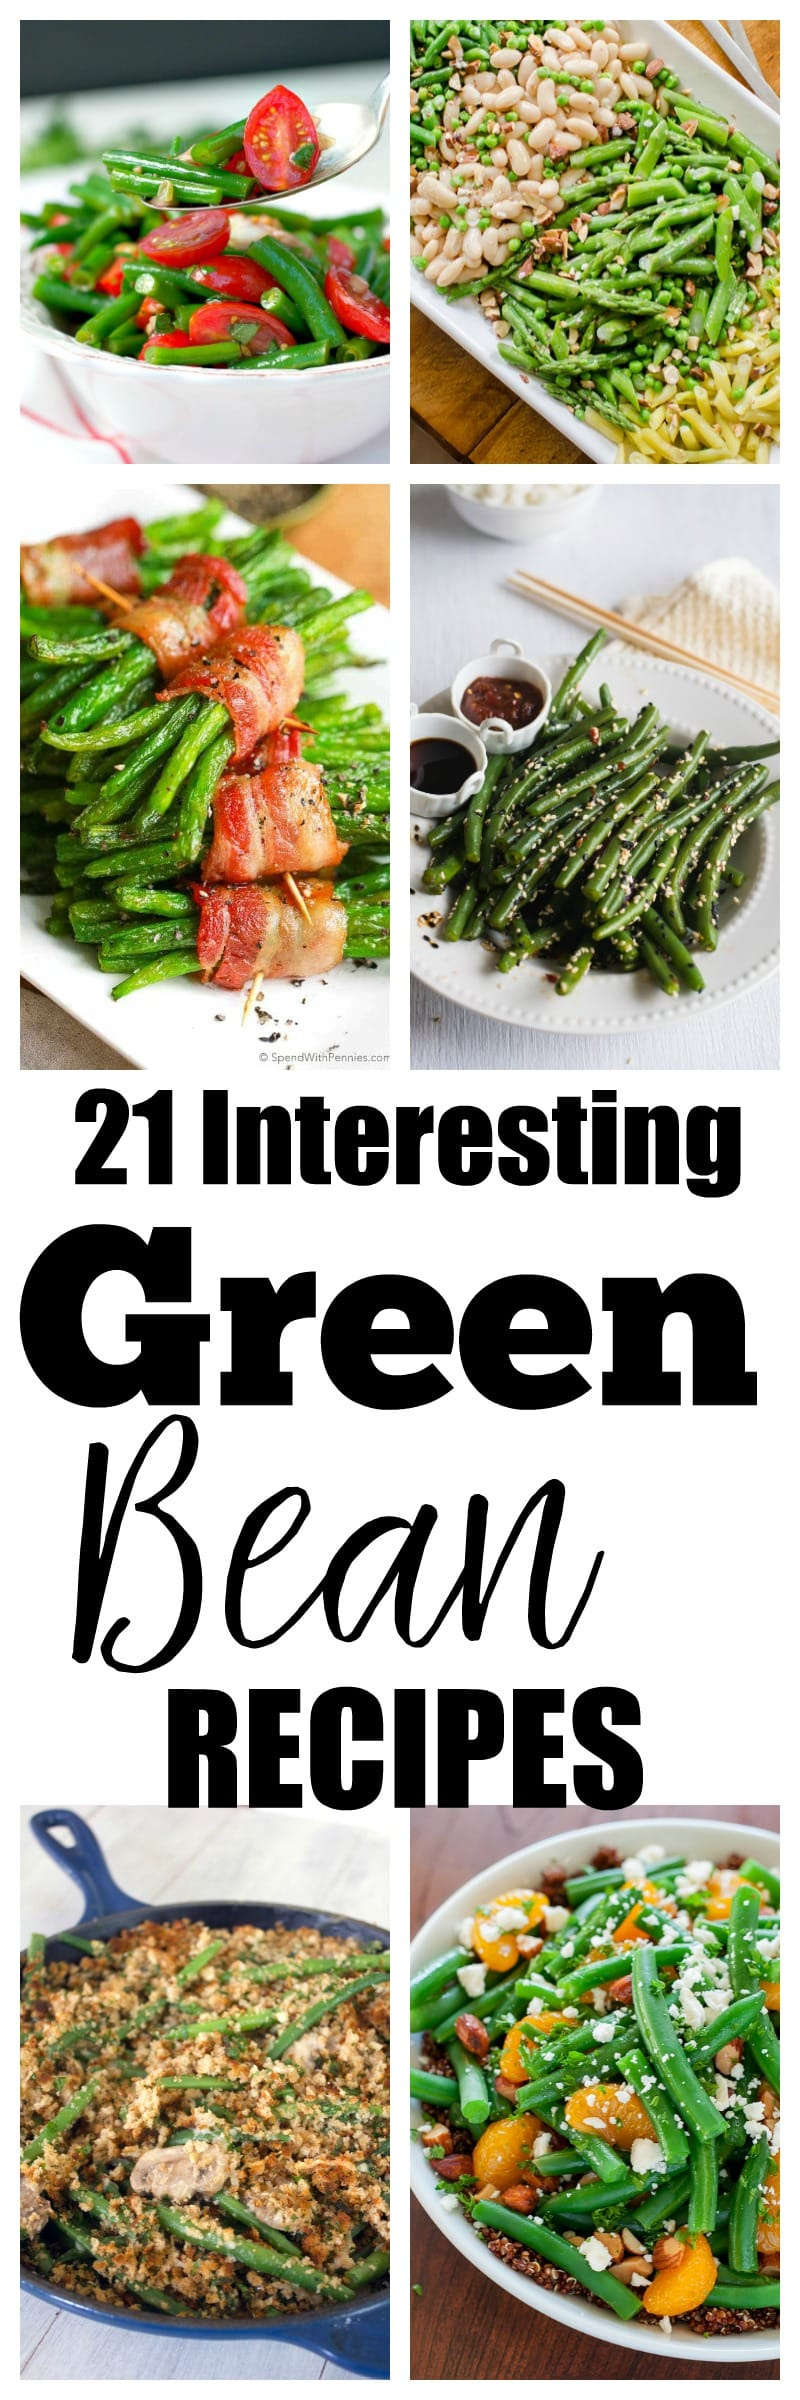 21 Interesting Green Bean Recipes to Try. Perfect for summer garden green beans OR something new for your Thanksgiving recipes menu! Thanksgiving food